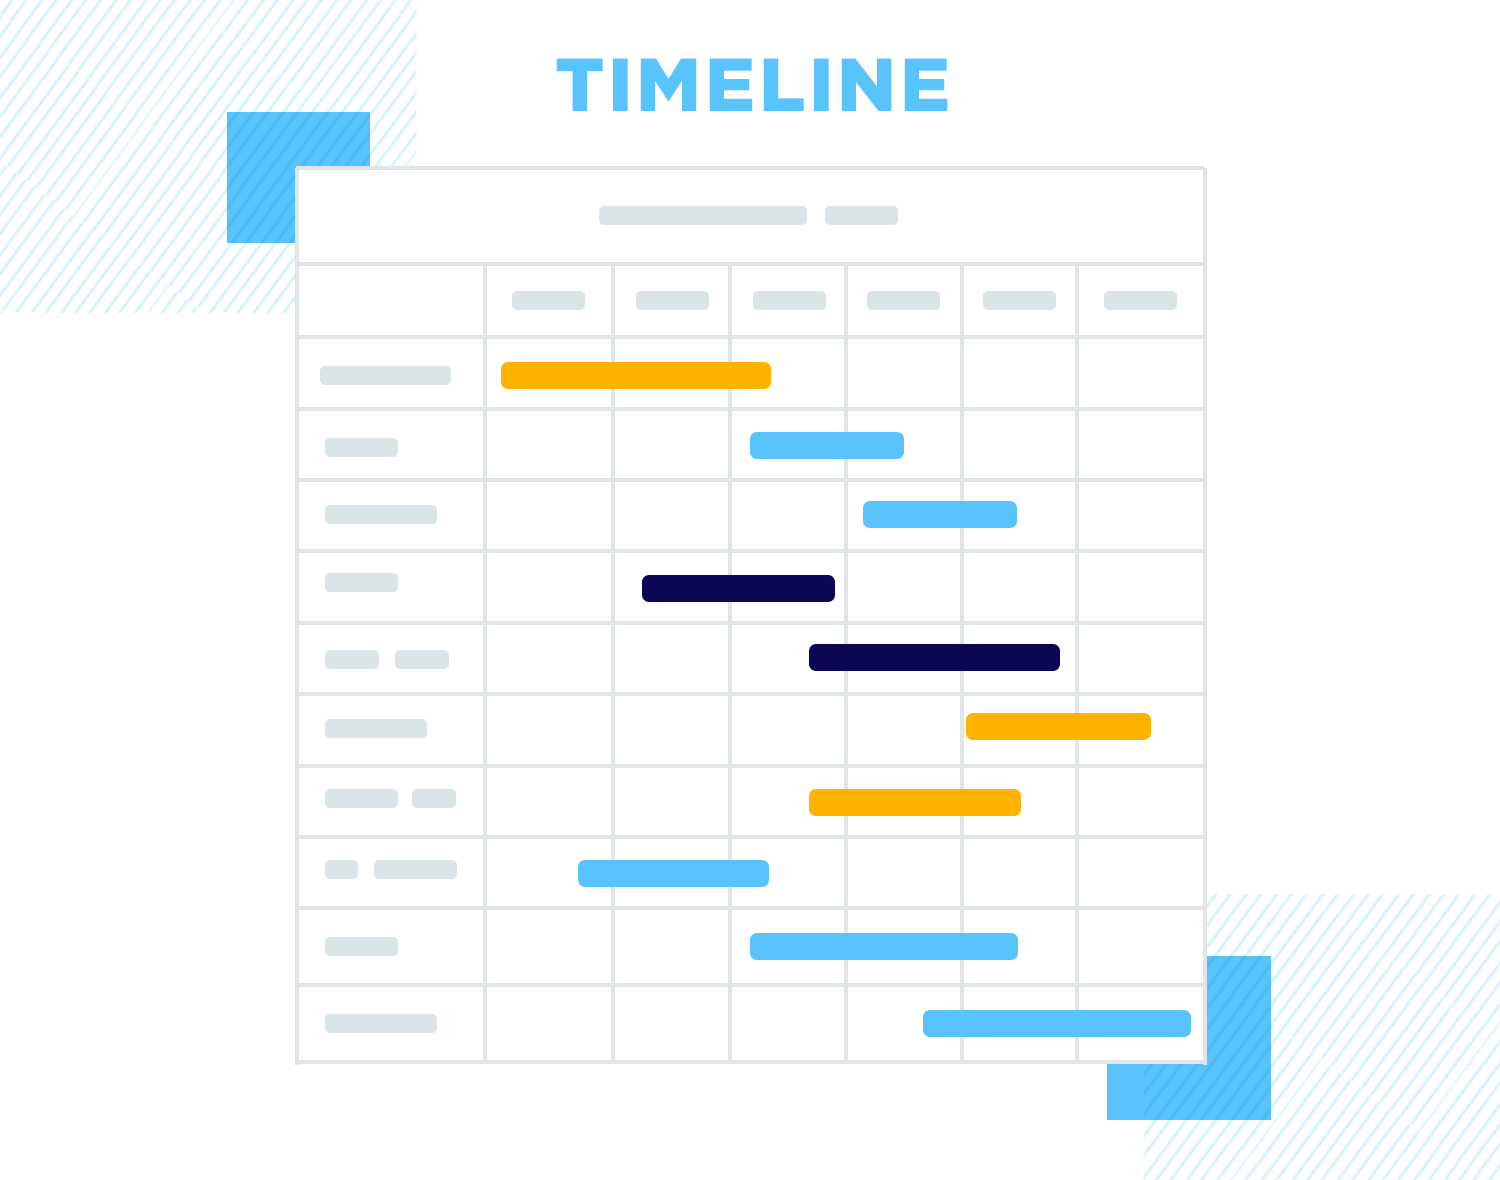 Functional specification documents - timeline roadmap using Gantt chart